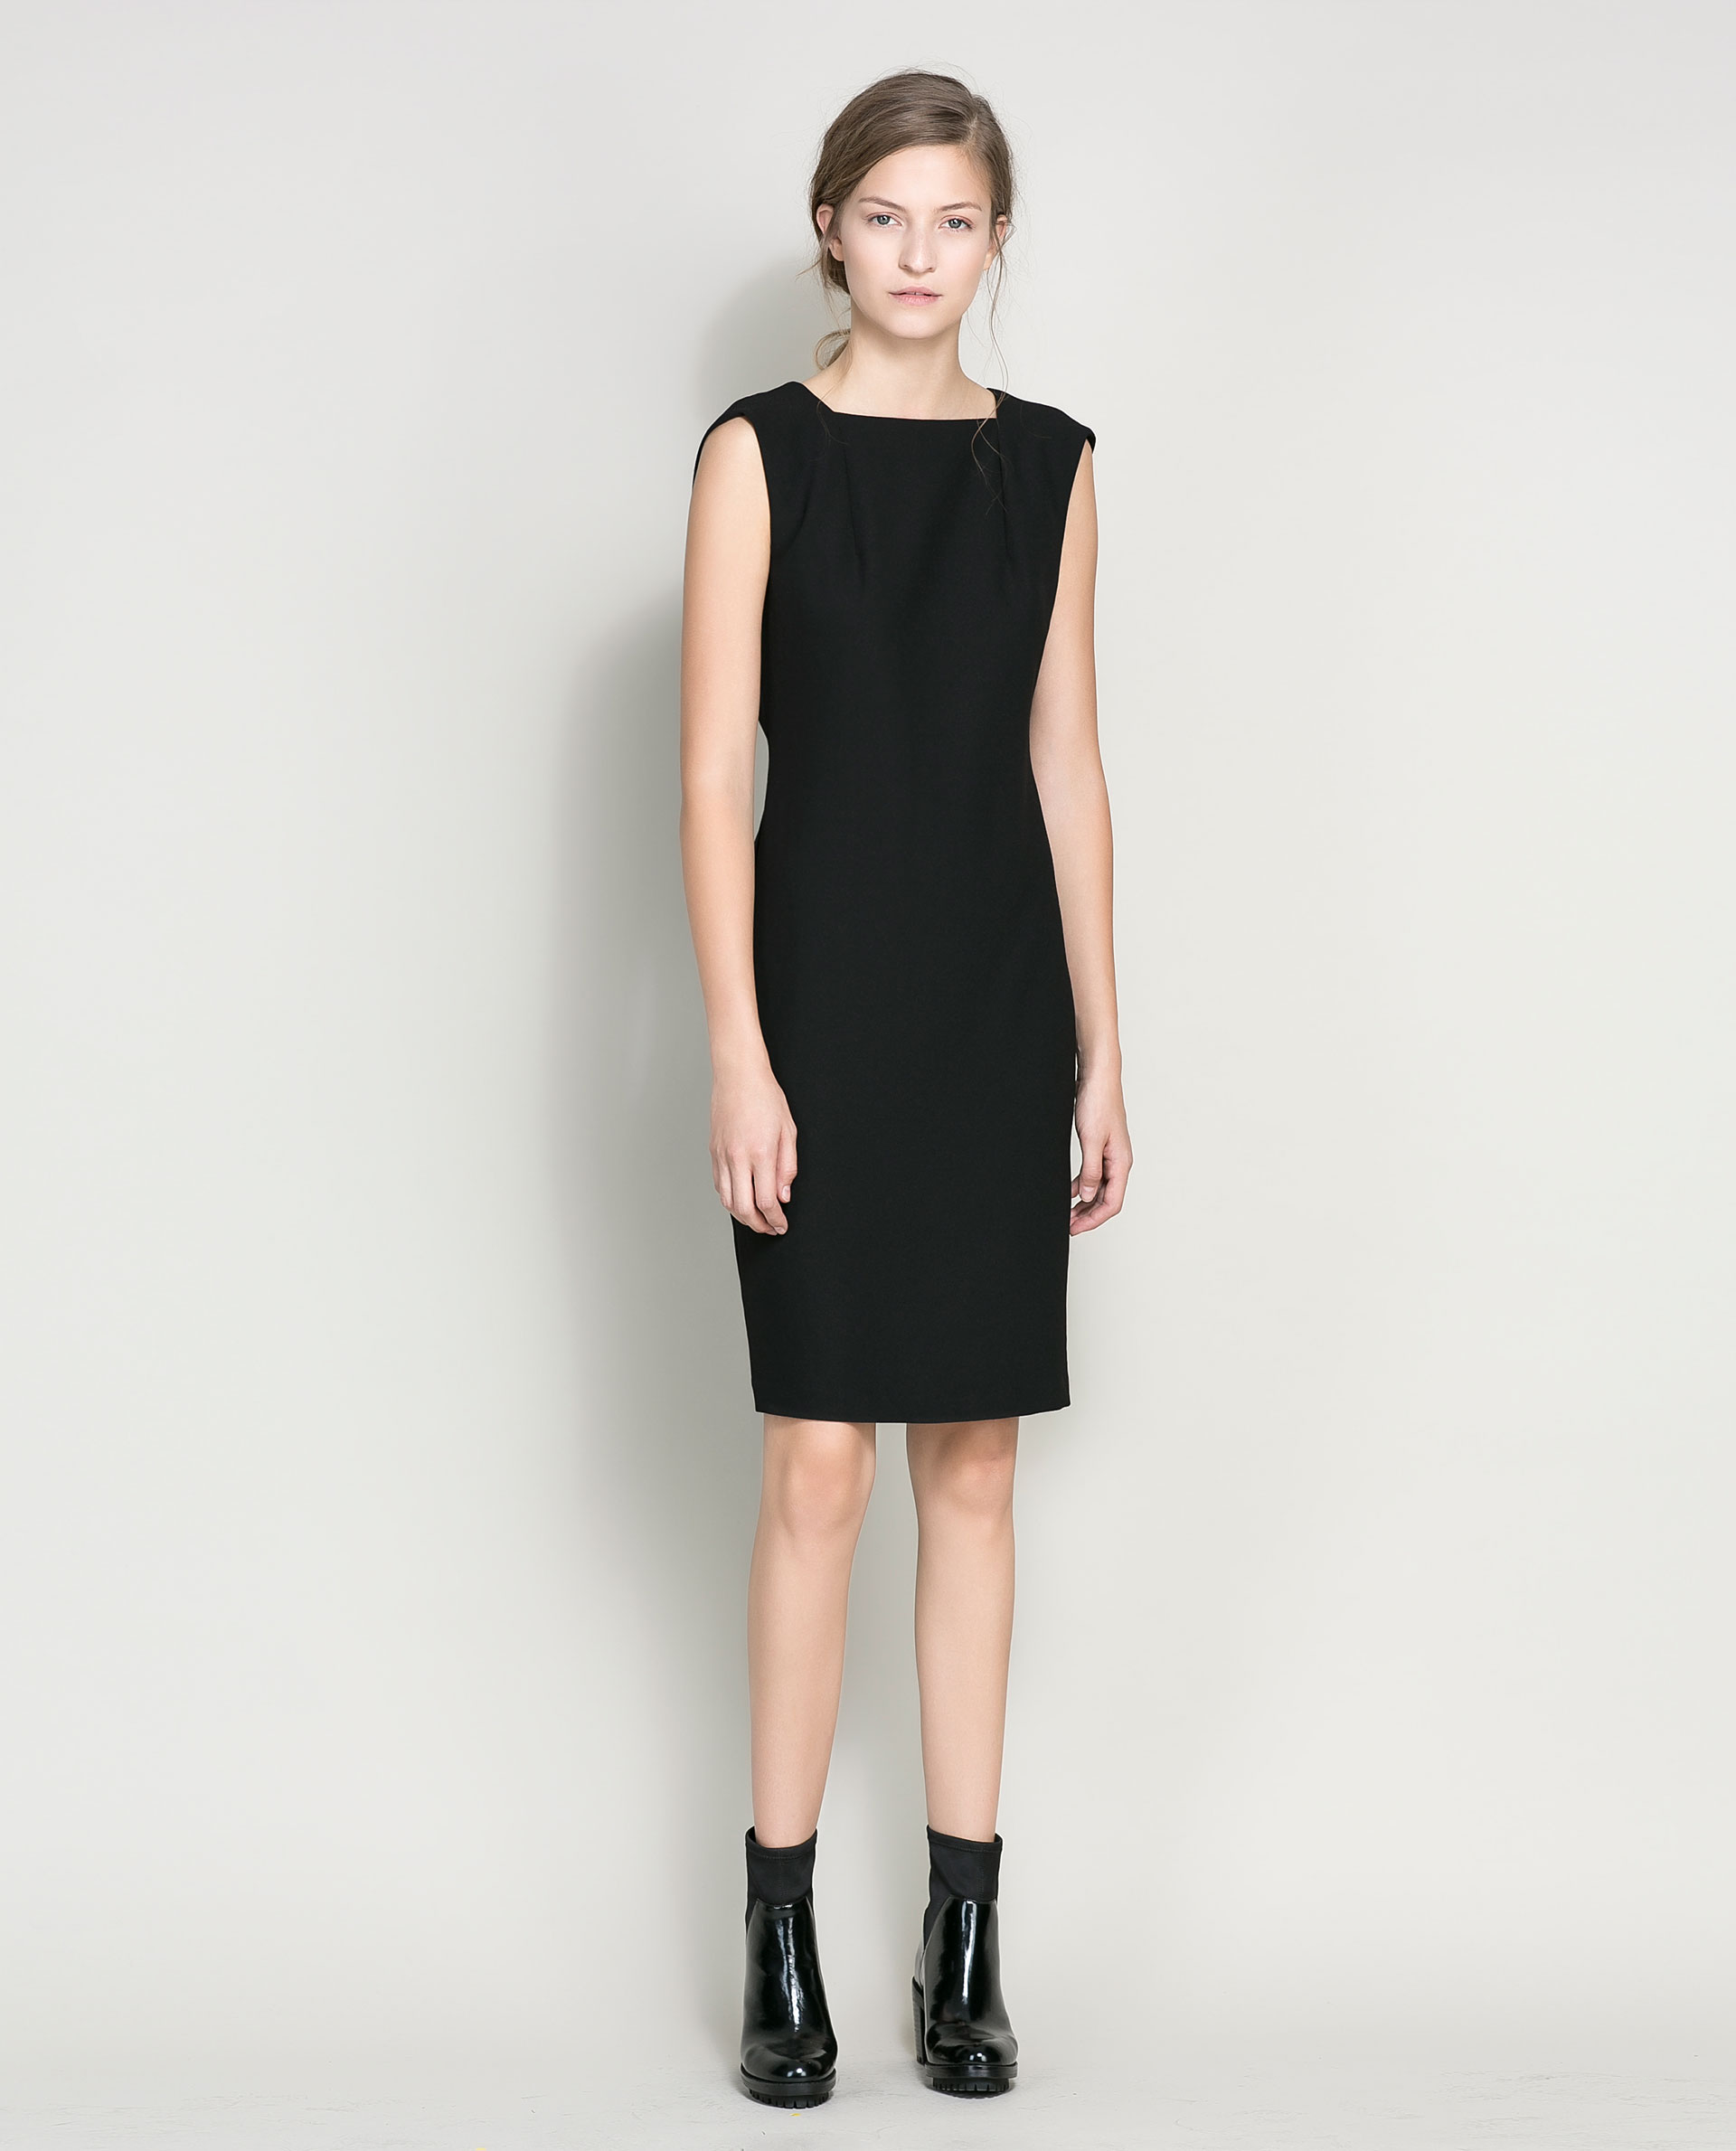 Zara Sleeveless Dress in Black | Lyst